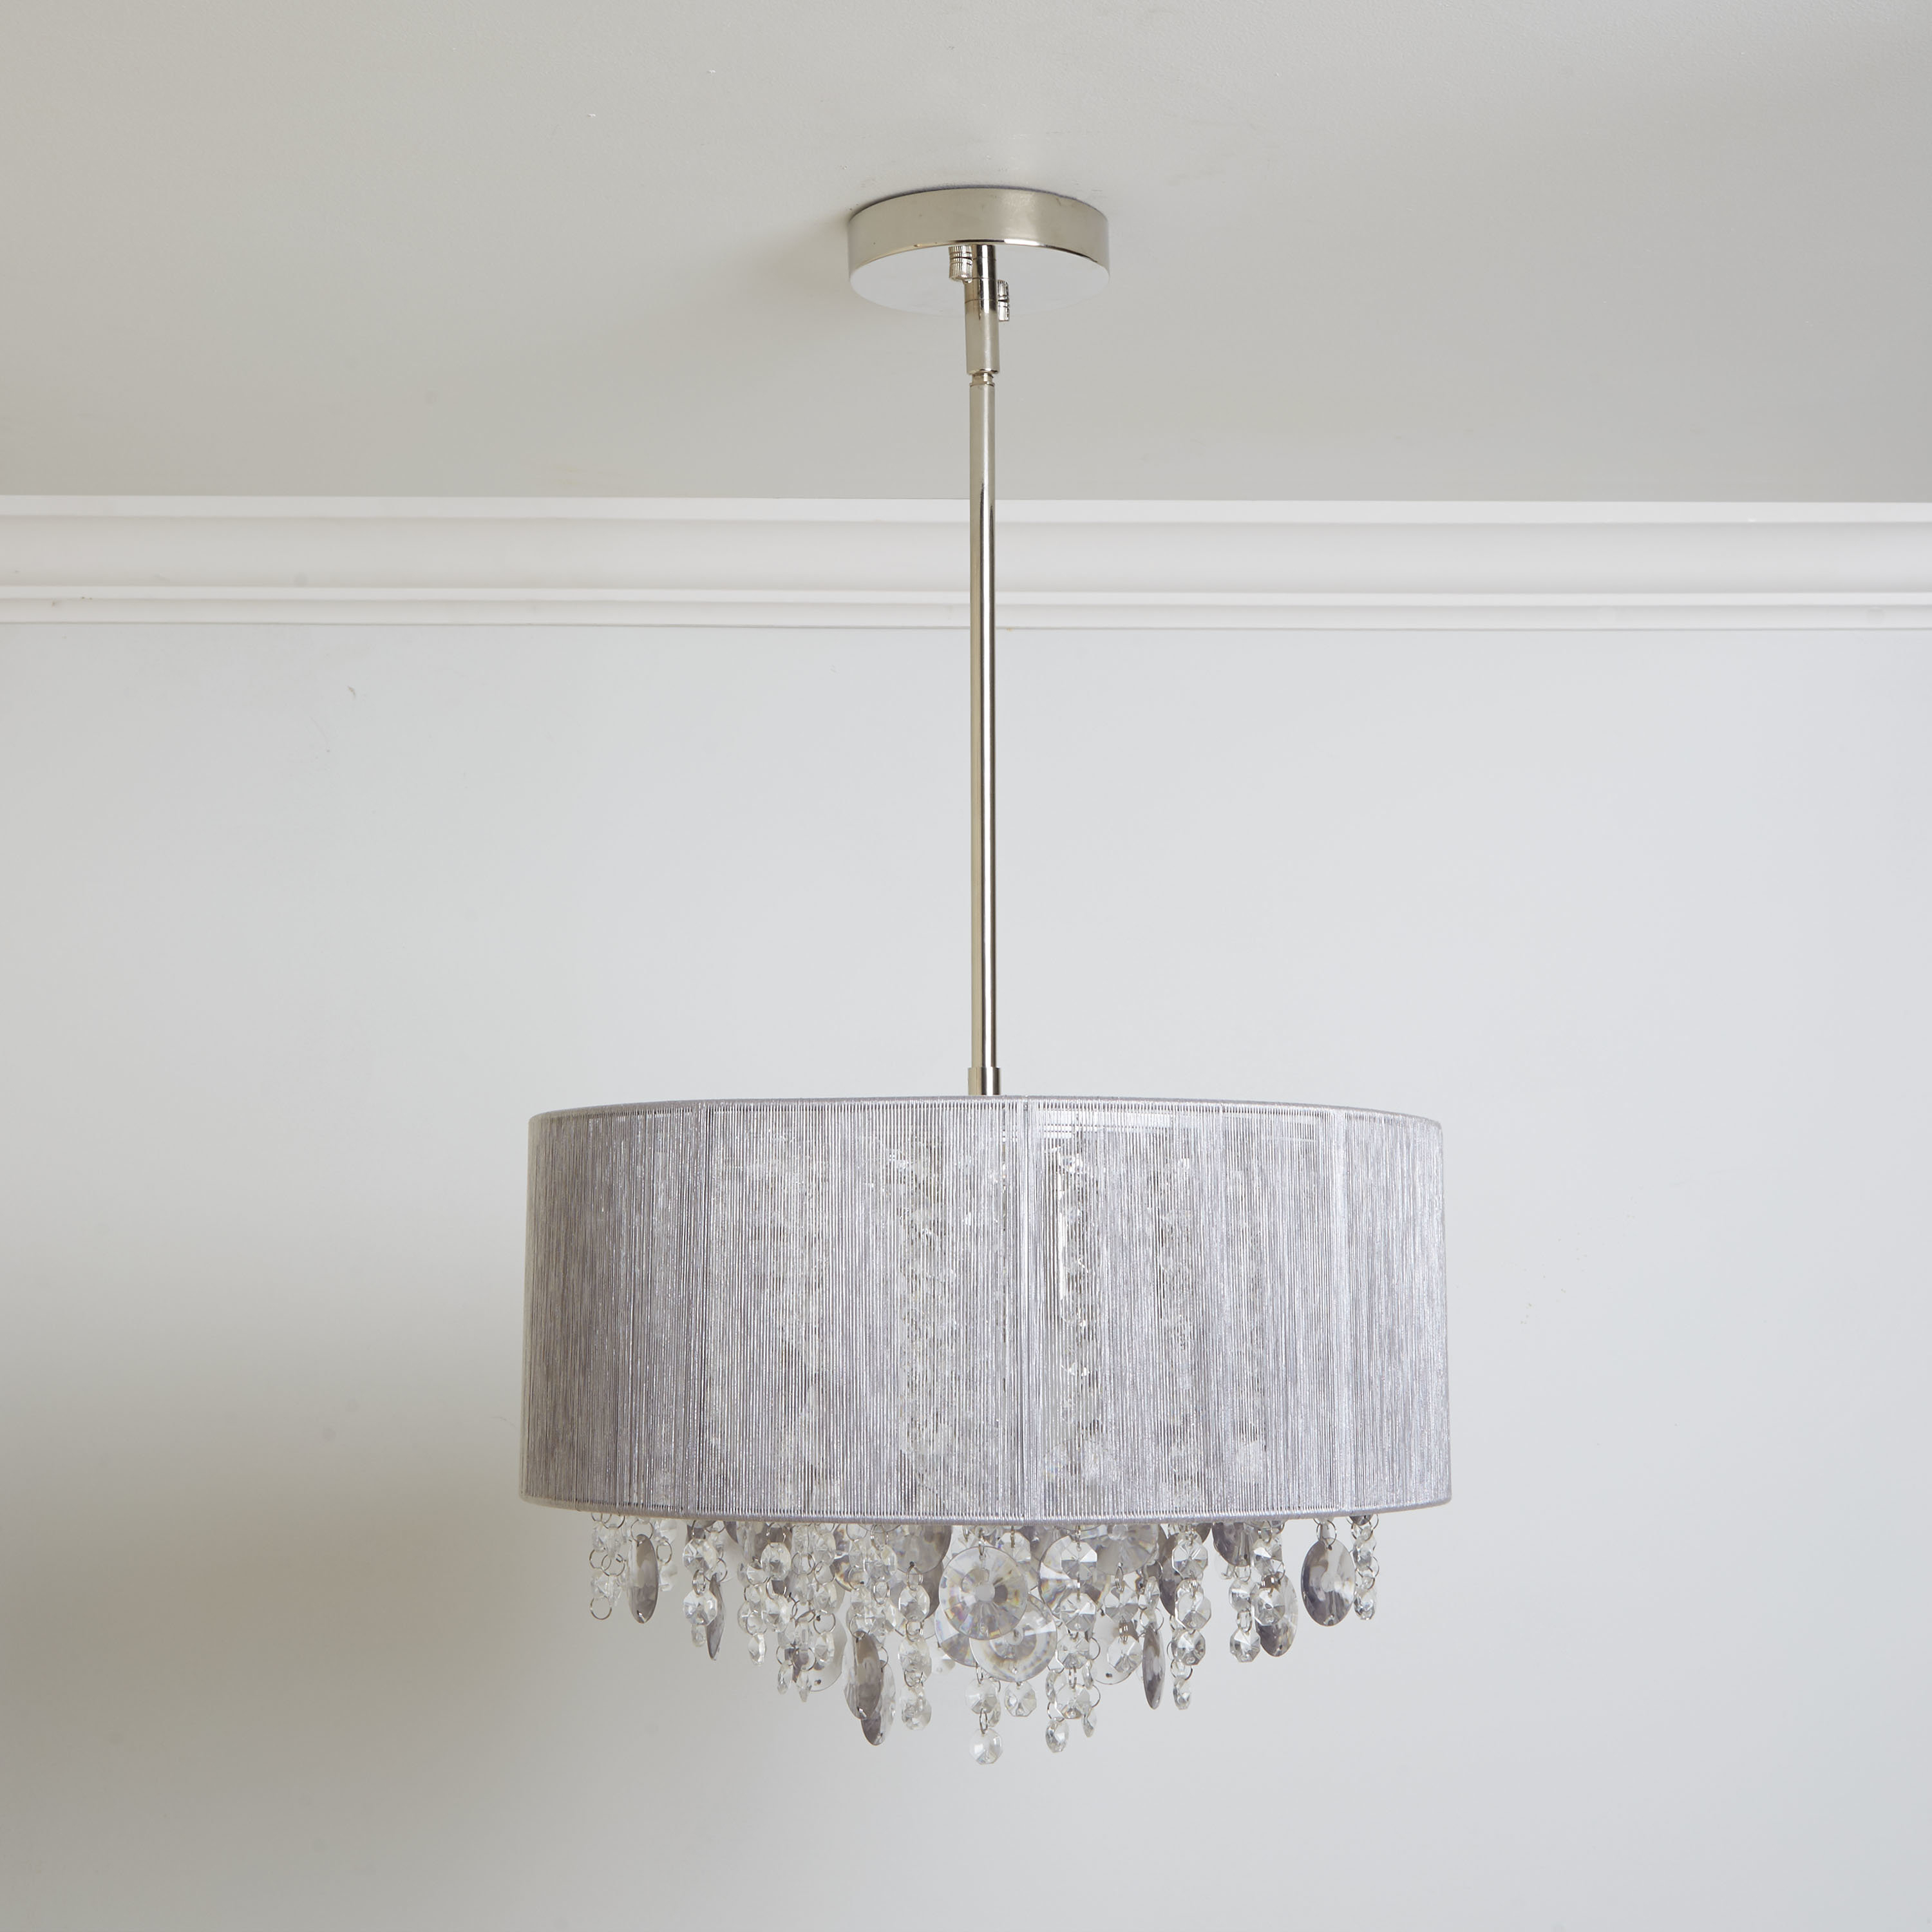 Drum Pendant Lighting You'll Love In 2019 | Wayfair Inside Willems 1 Light Single Drum Pendants (Photo 5 of 30)